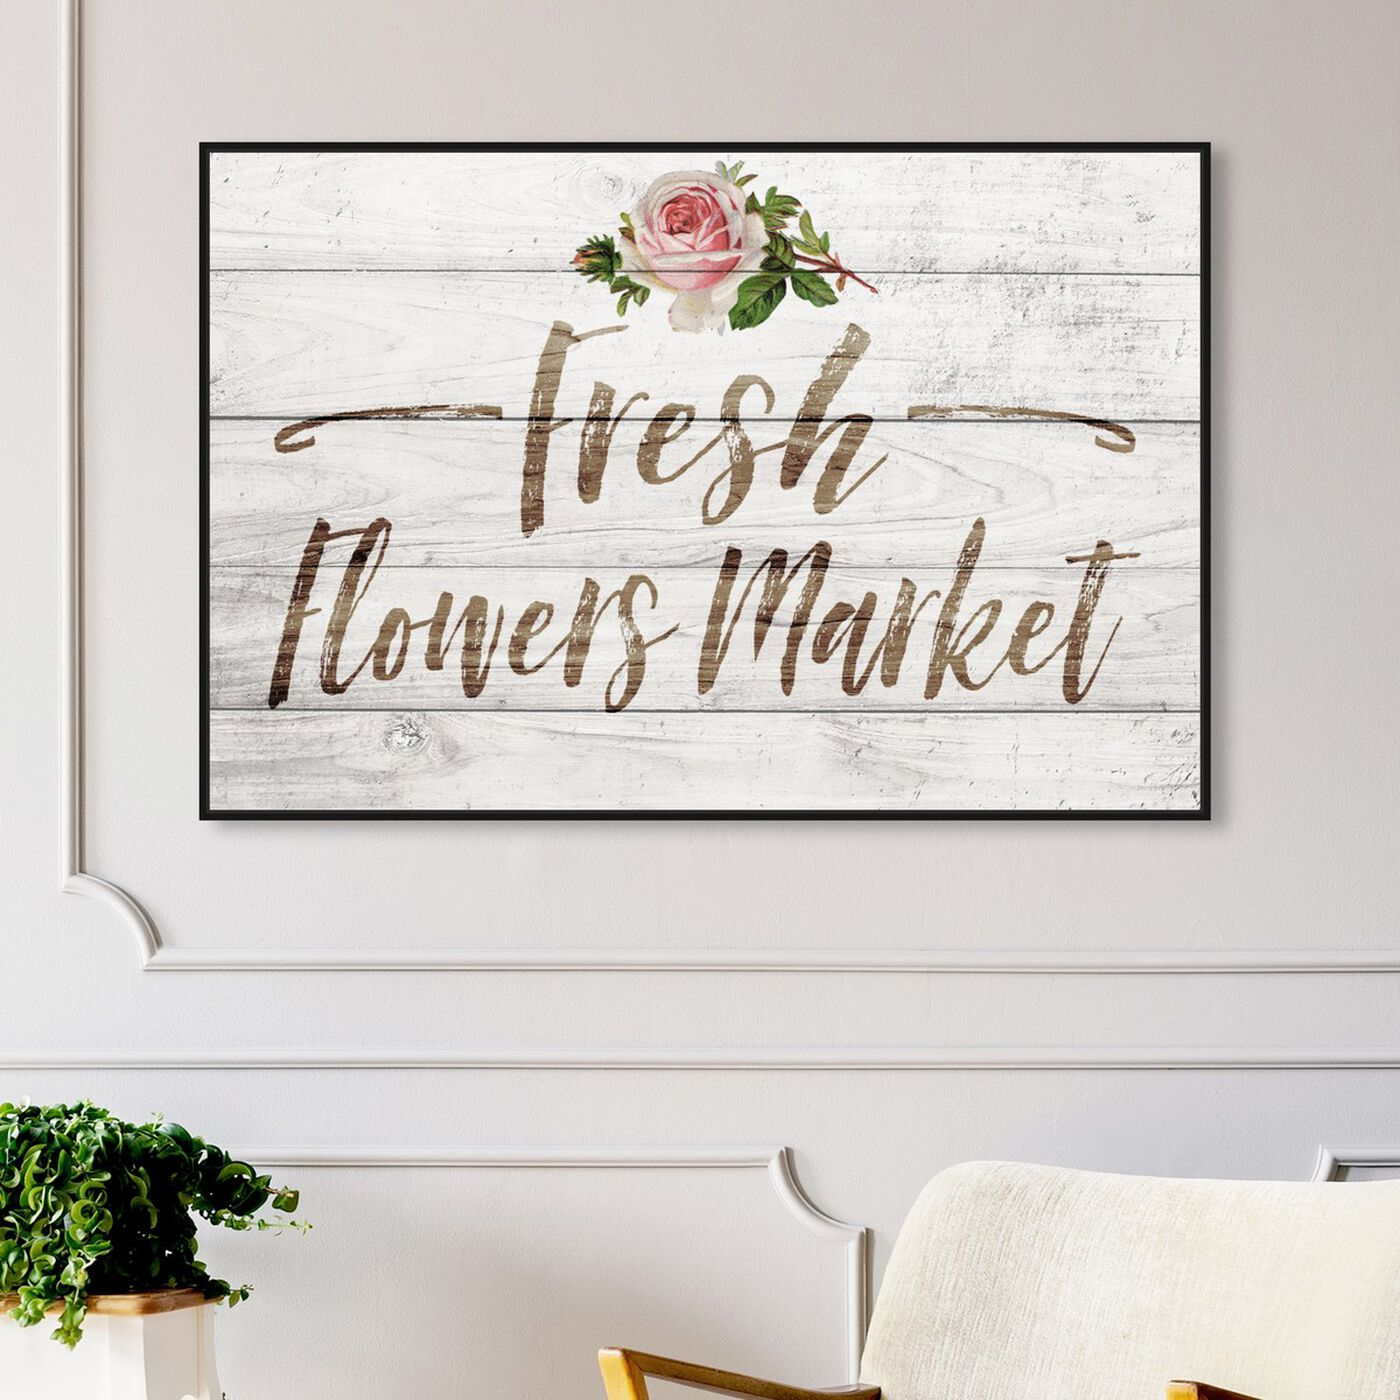 Hanging view of Fresh Flowers Market featuring typography and quotes and quotes and sayings art.